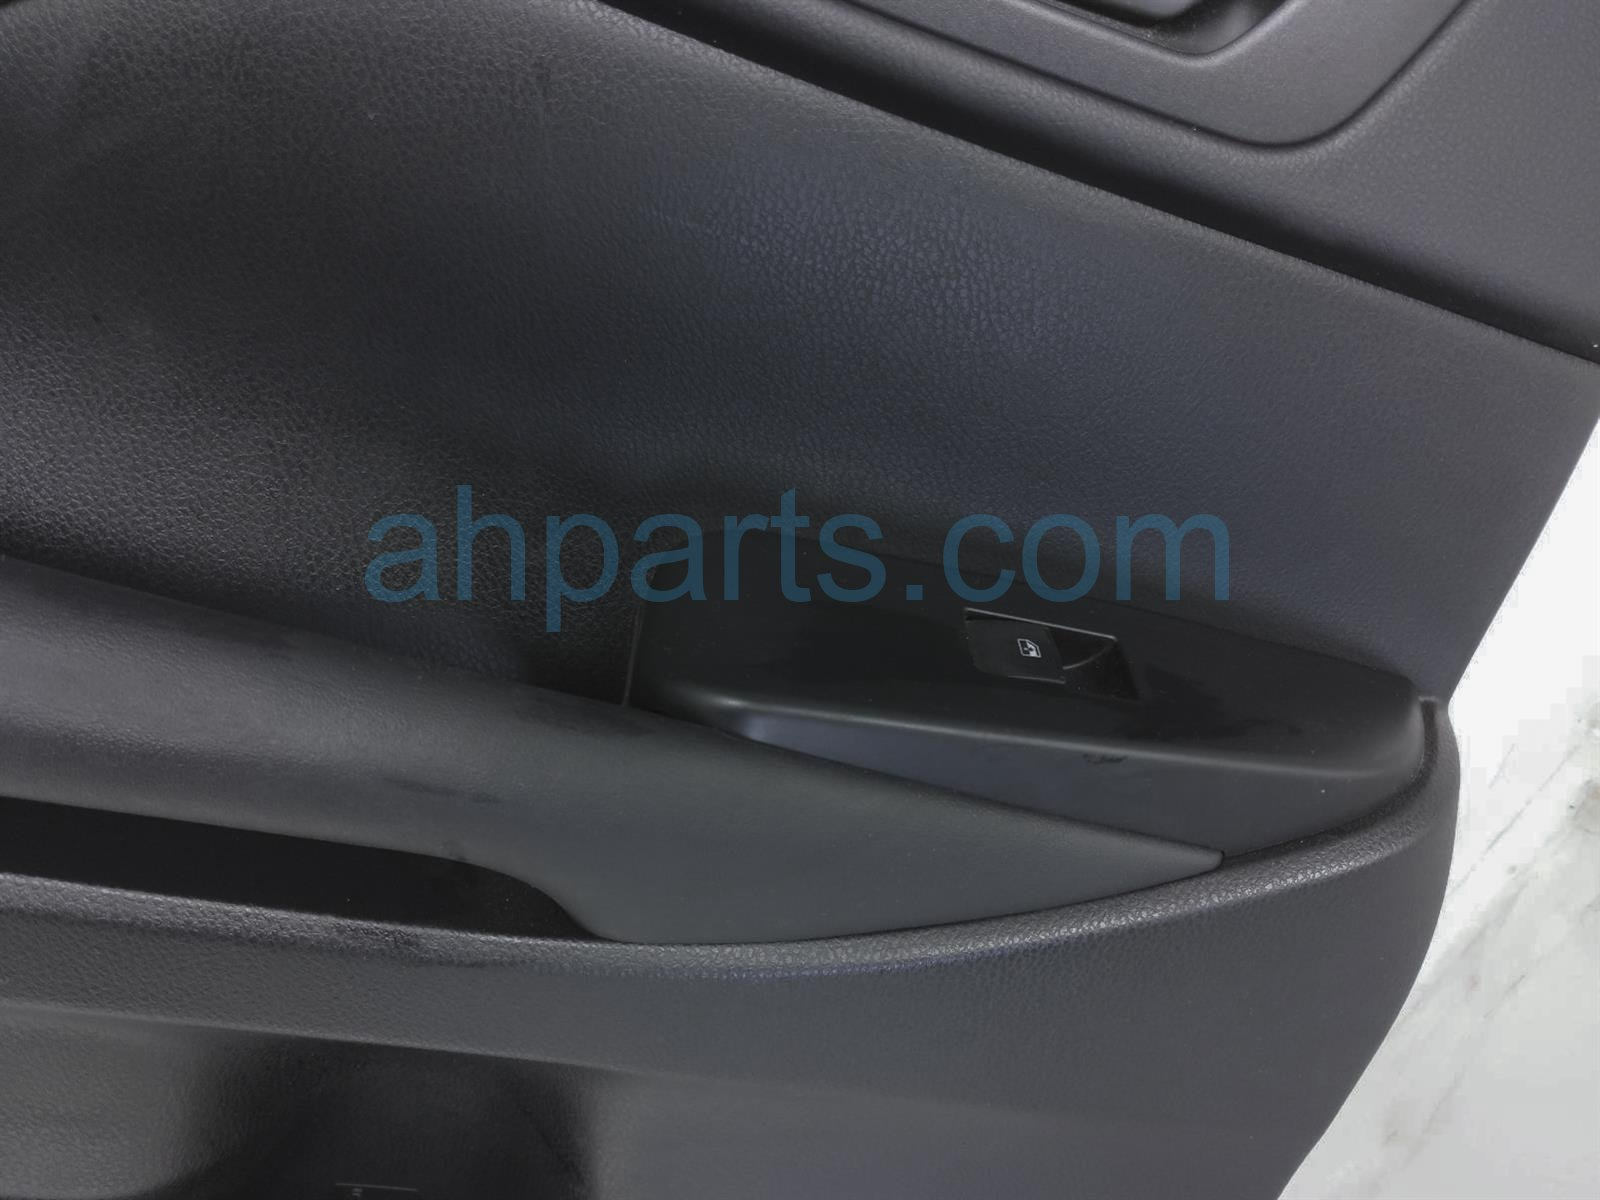 2014 Toyota Highlander Trim / Liner Rear Driver Interior Door Panel   Black 67640 0E751 C2 Replacement